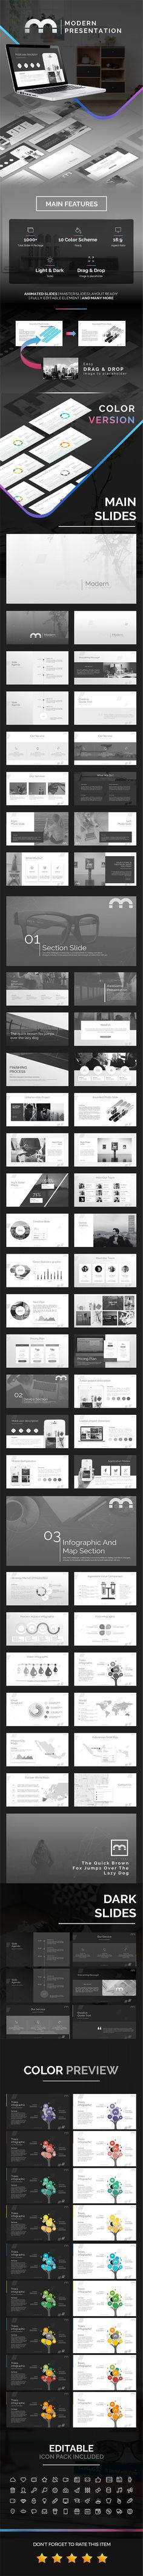 Modern Powerpoint Template - Business PowerPoint Templates Download here: https://graphicriver.net/item/modern-powerpoint-template/19360977?ref=classicdesignp